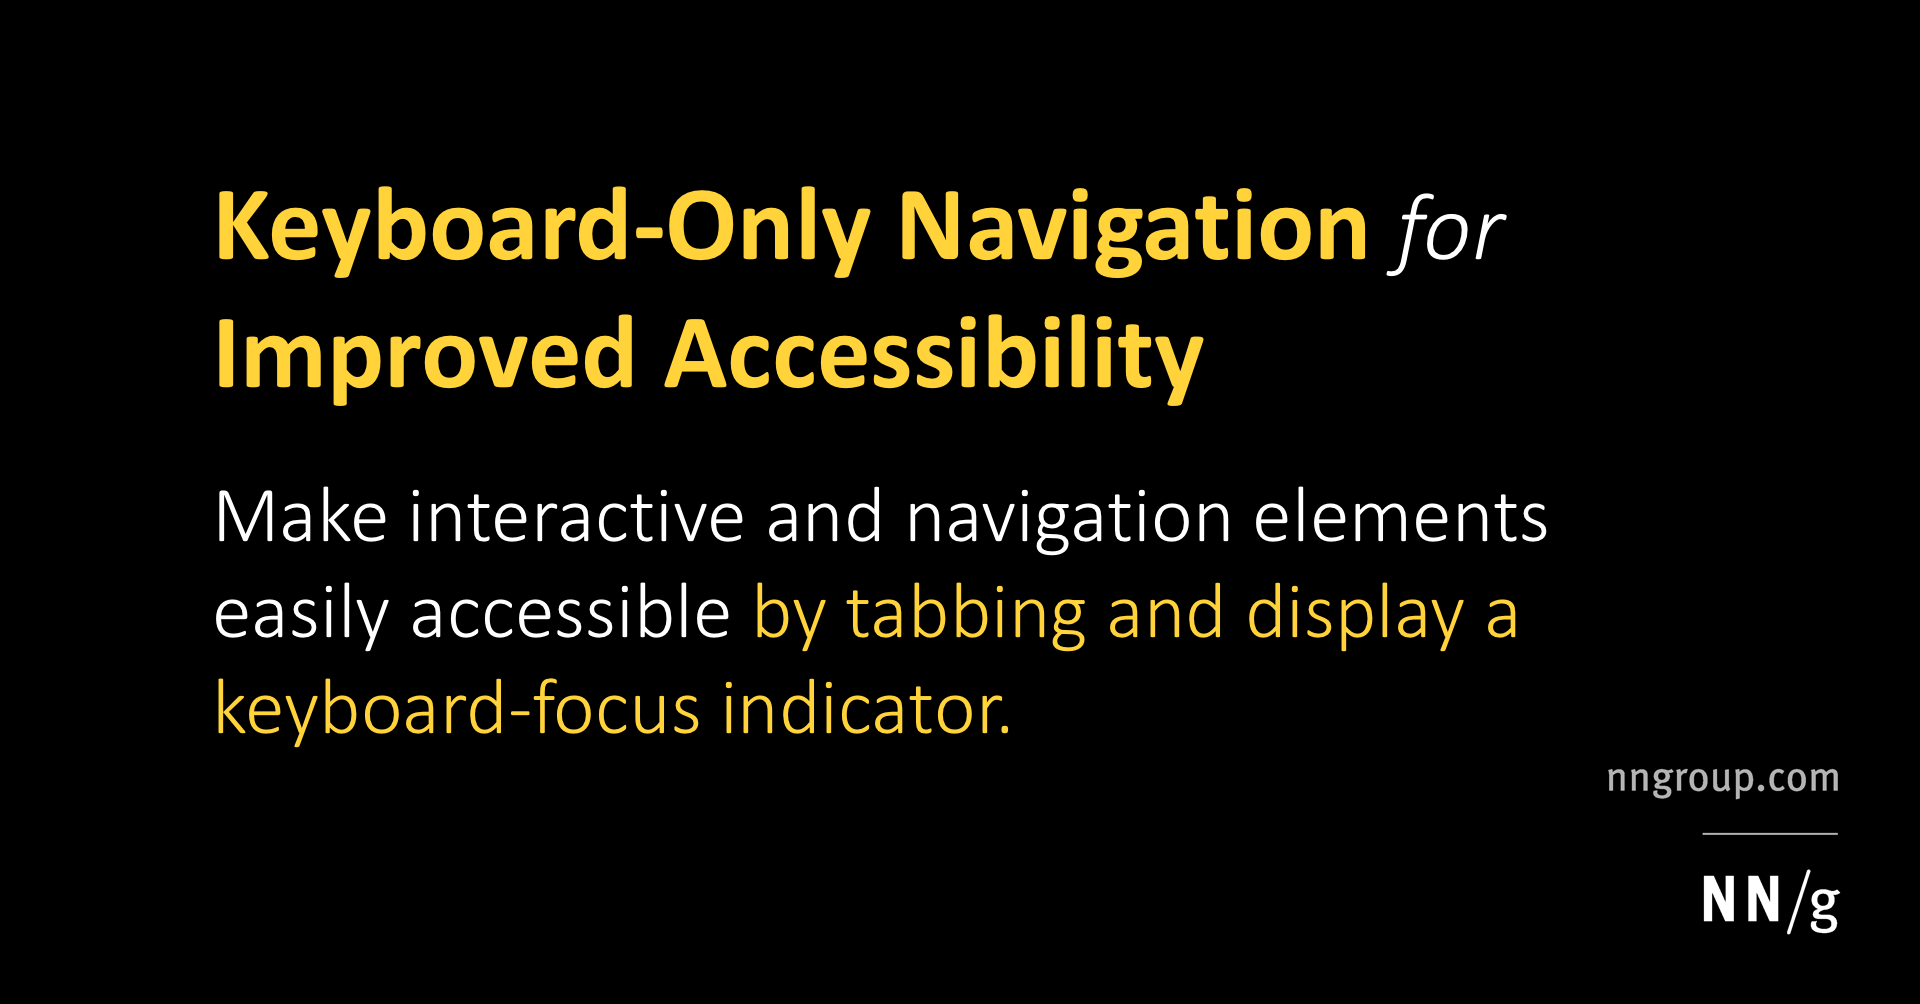 Keyboard-Only Navigation for Improved Accessibility